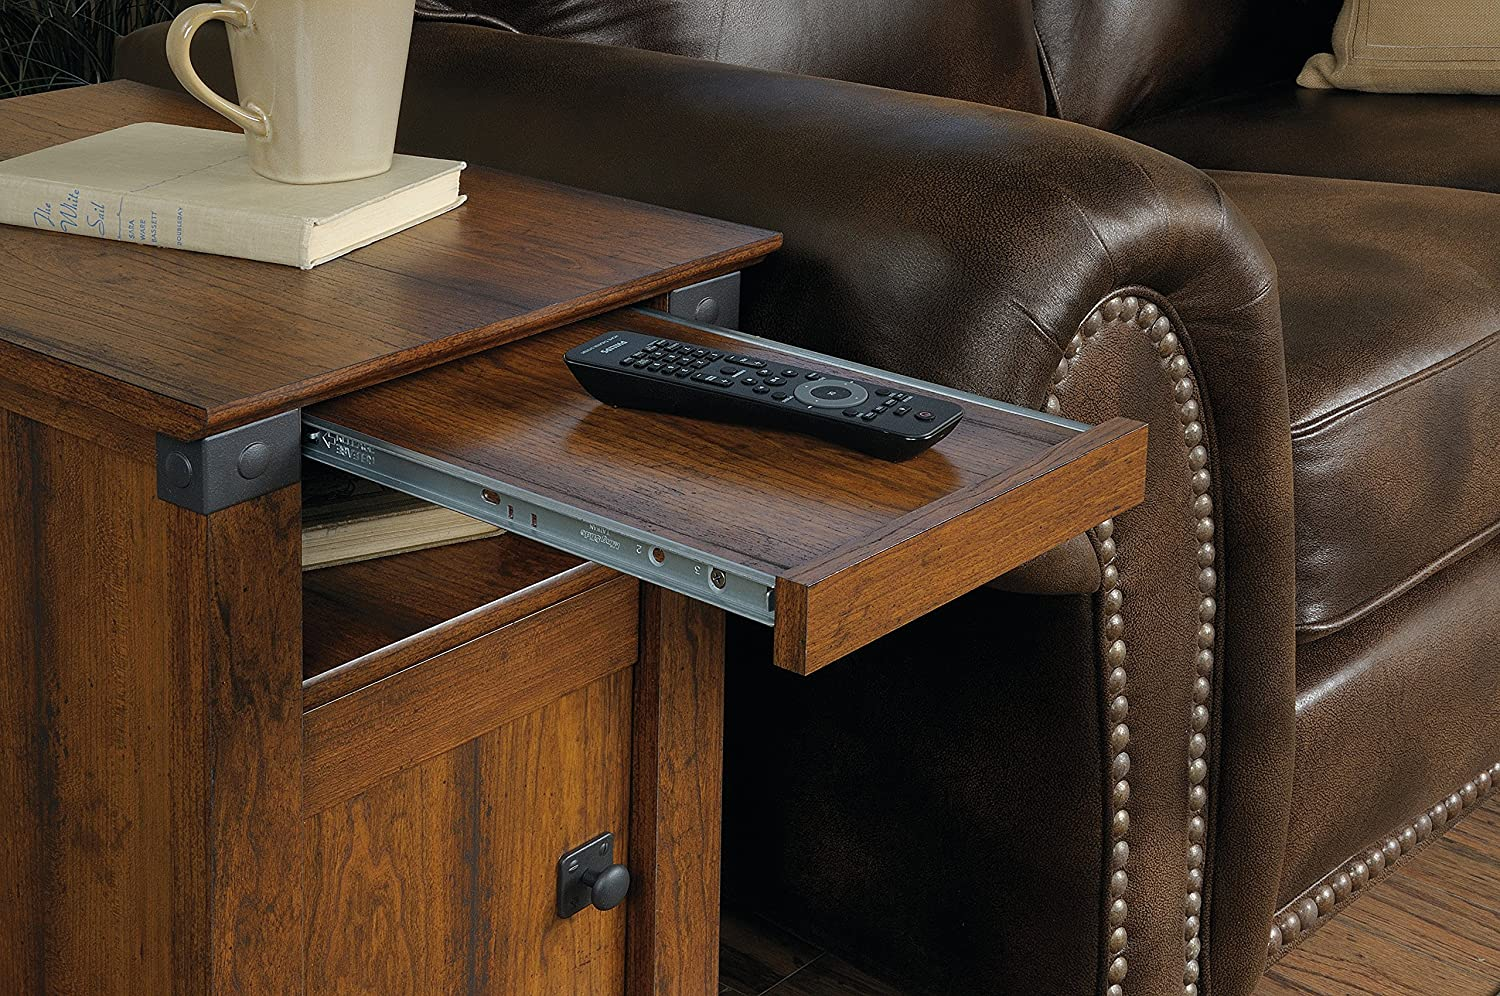 Amazon sauder carson forge side table washington cherry amazon sauder carson forge side table washington cherry finish kitchen dining geotapseo Gallery